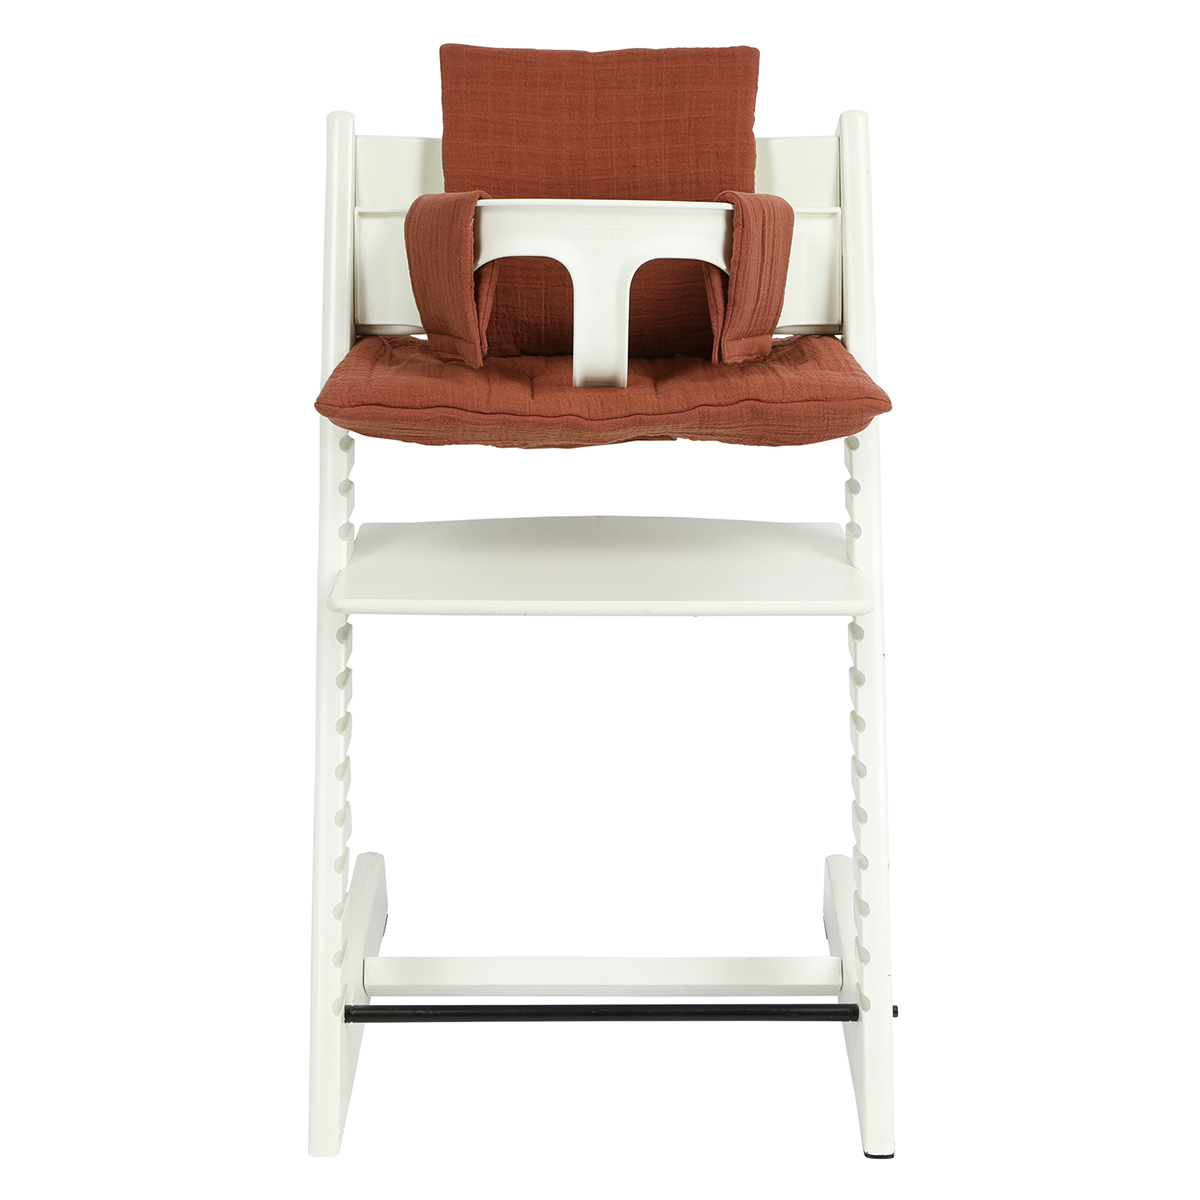 Chaise haute Coussin Classic Tripp Trapp - Bliss Rust Coussin Classic Tripp Trapp - Bliss Rust